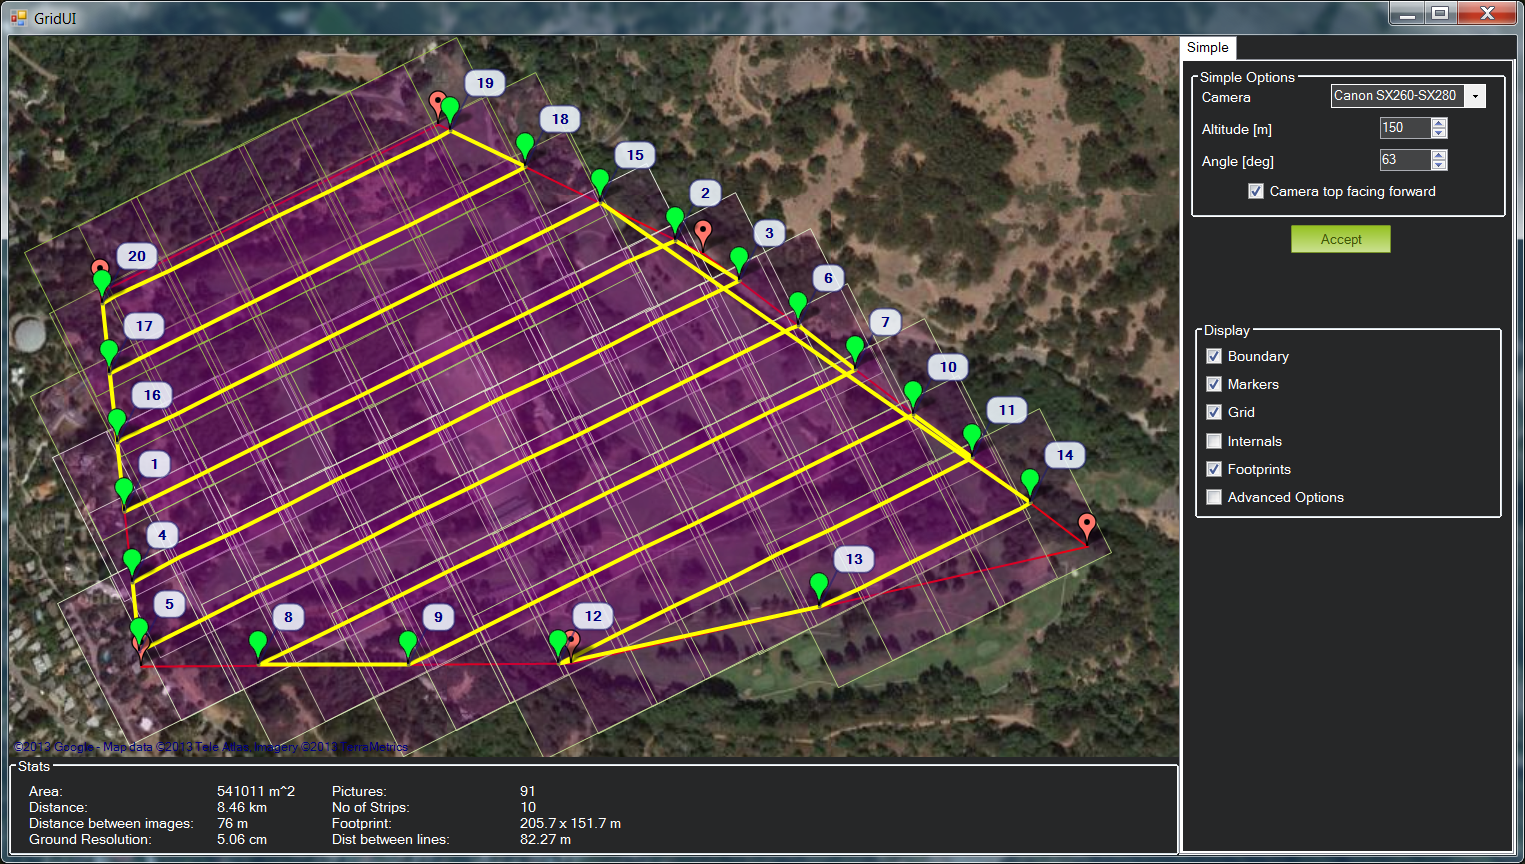 Creating automatic mission plans for aerial surveying - DIY Drones